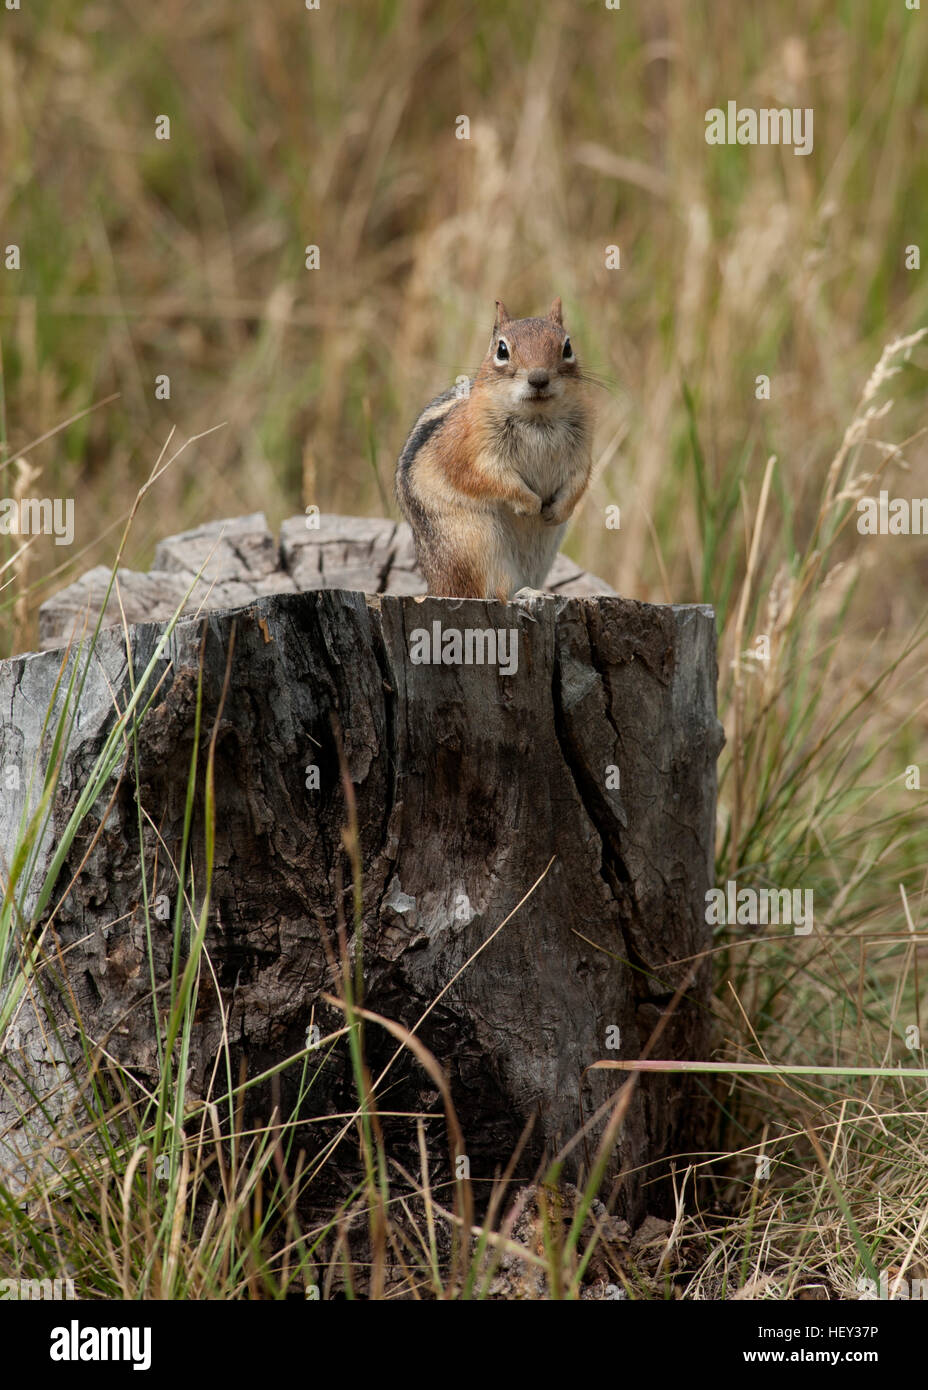 A Golden Mantled Ground Squirrel (Callospermophilus lateralis) watches from a stump - Stock Image